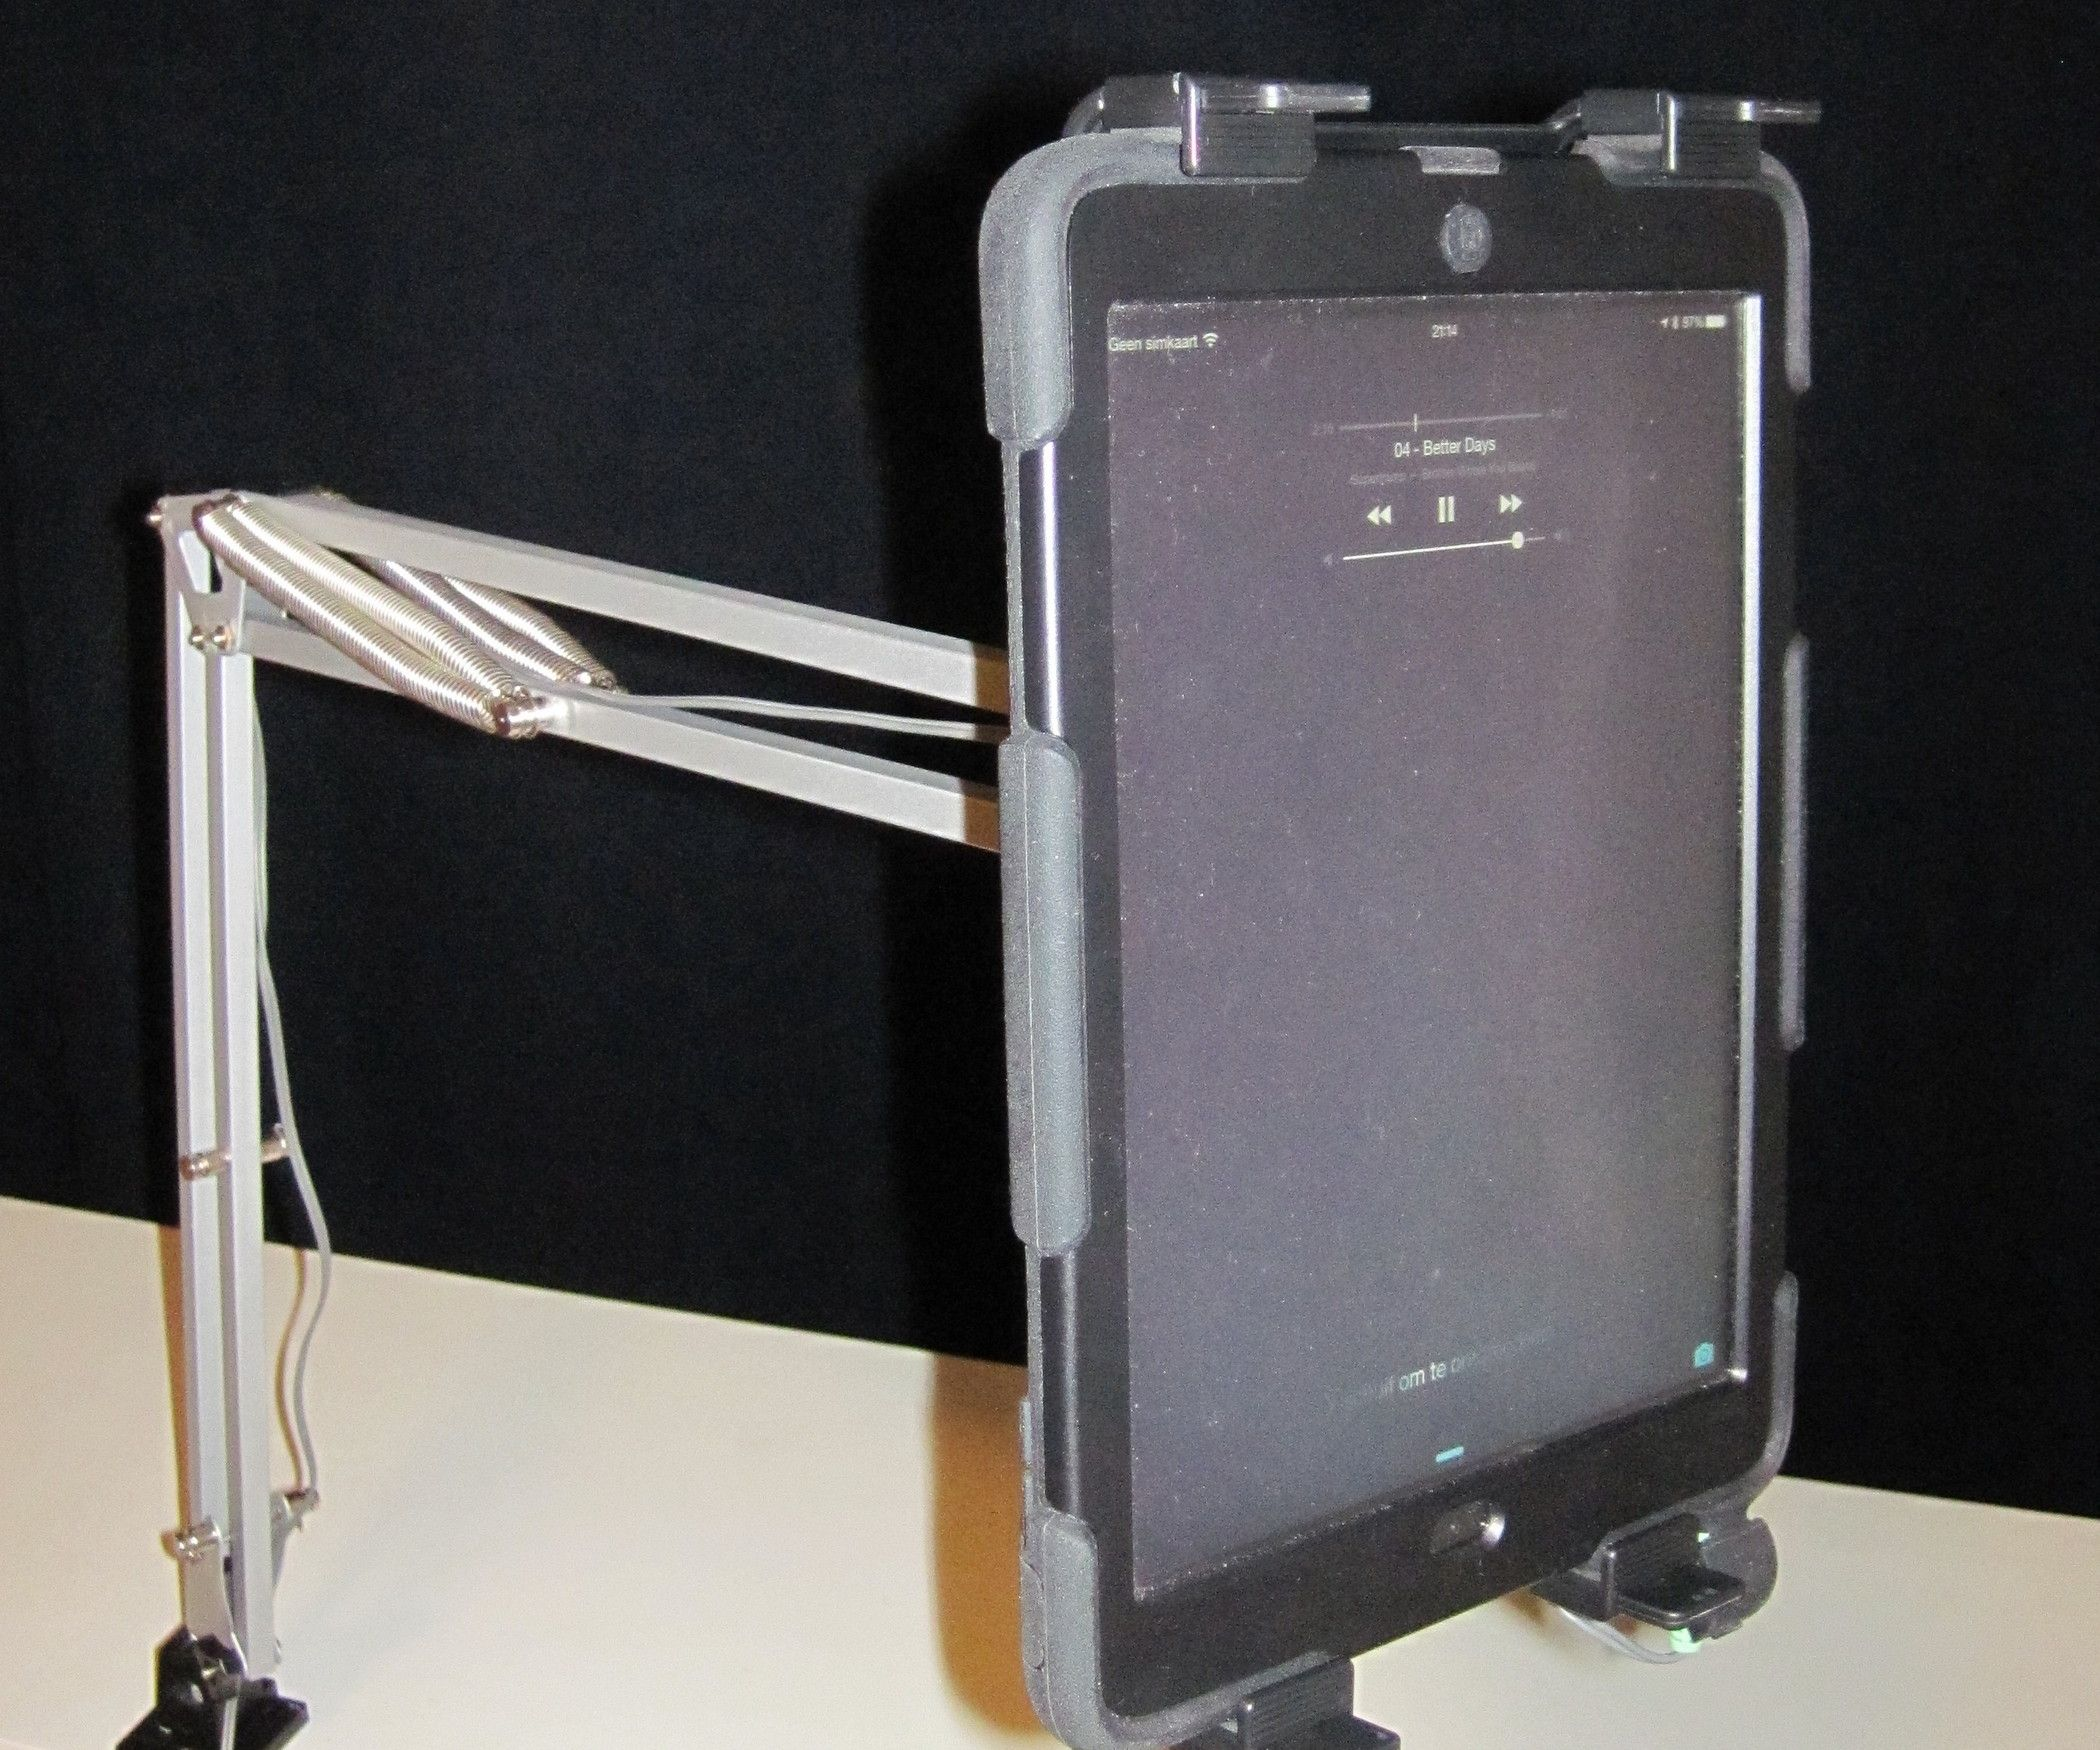 ikeahack tertial ipad holder ipad holders and ikea hack